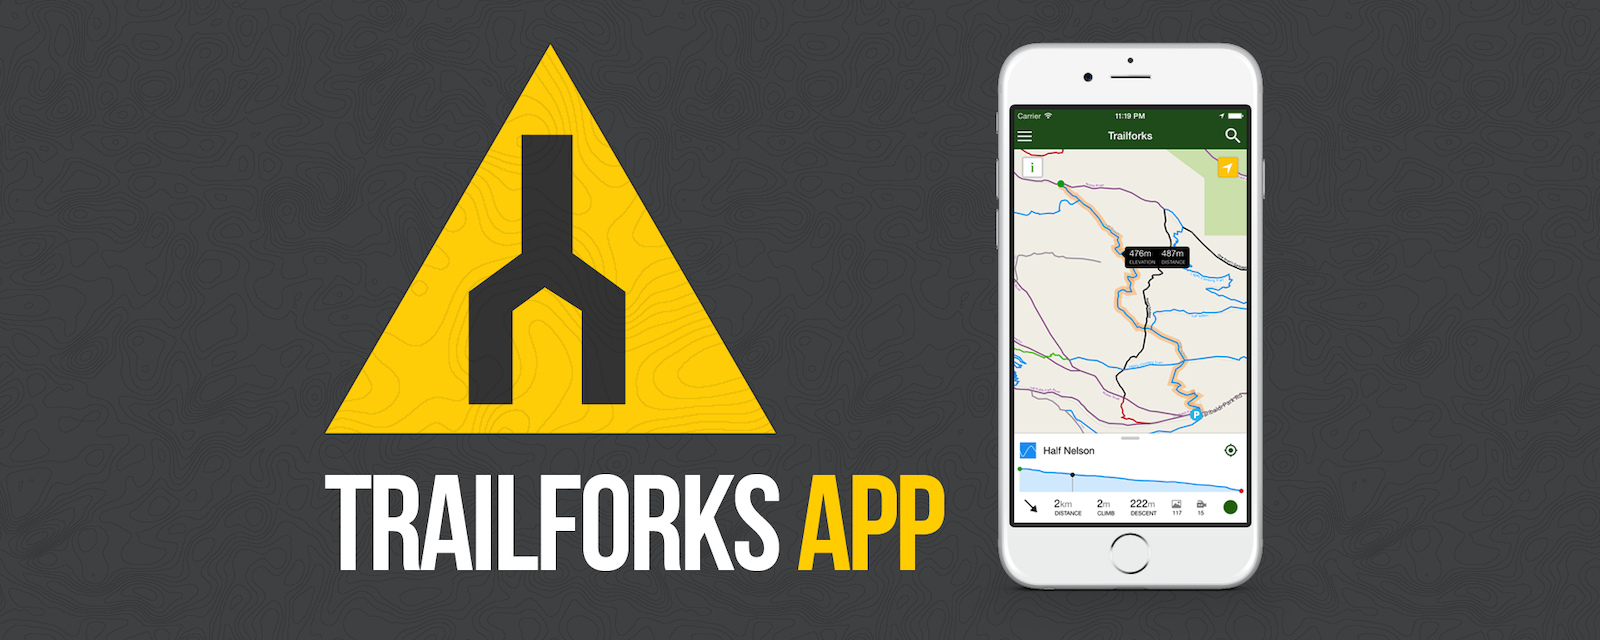 Trailforks app screenshot